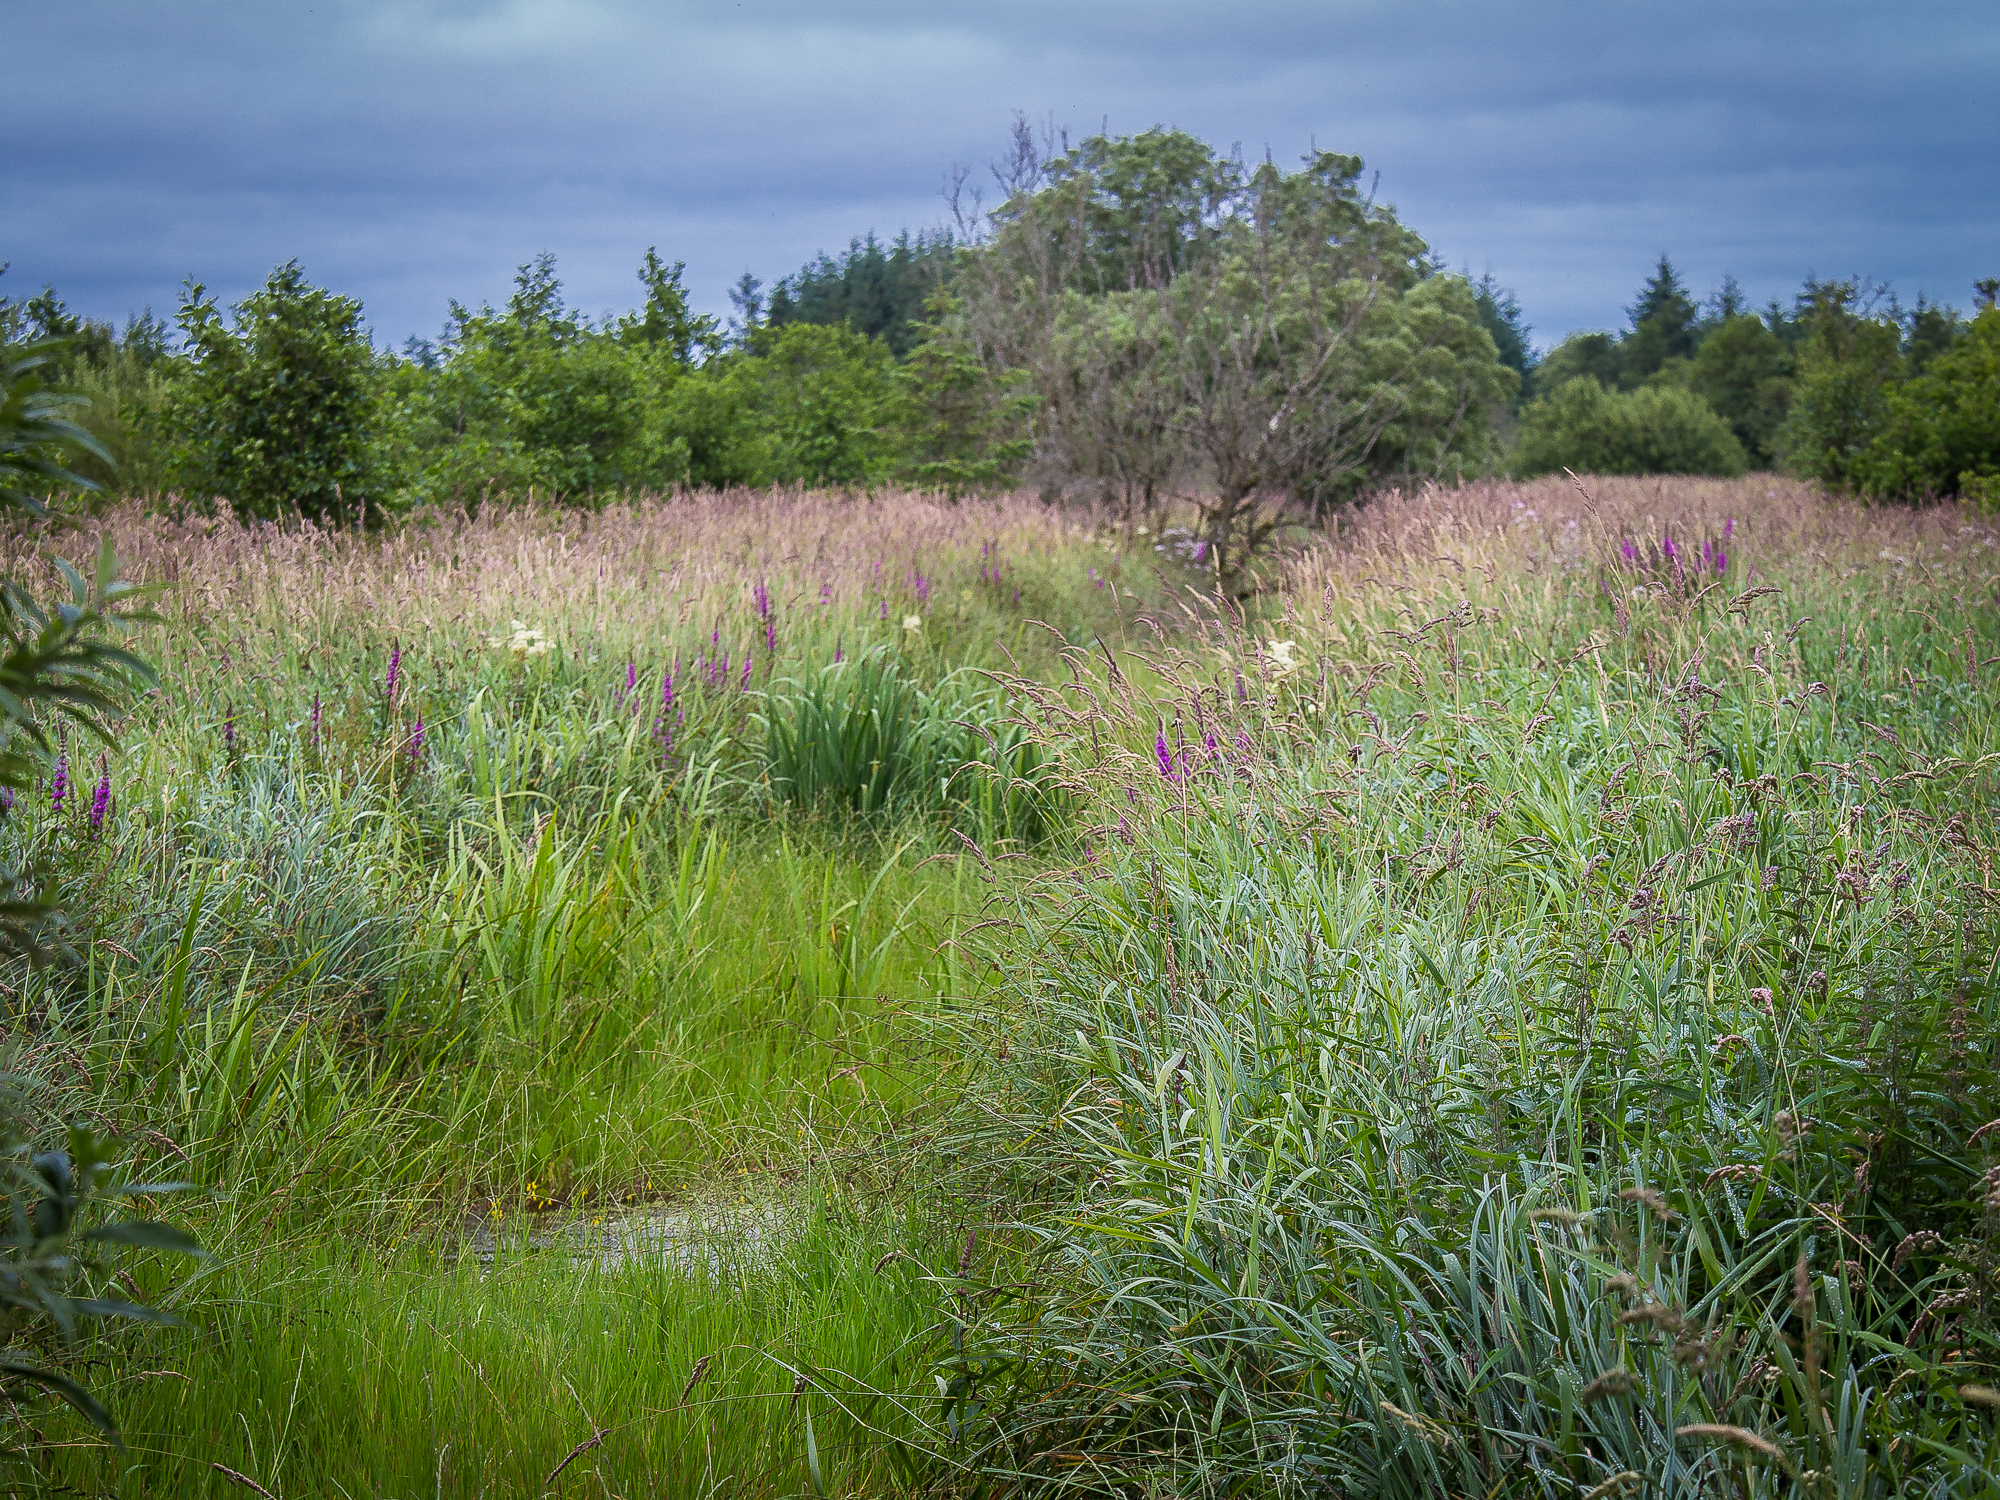 Purple flowers, lush greens, flowers of white all go to make up a bog scene in North Cork